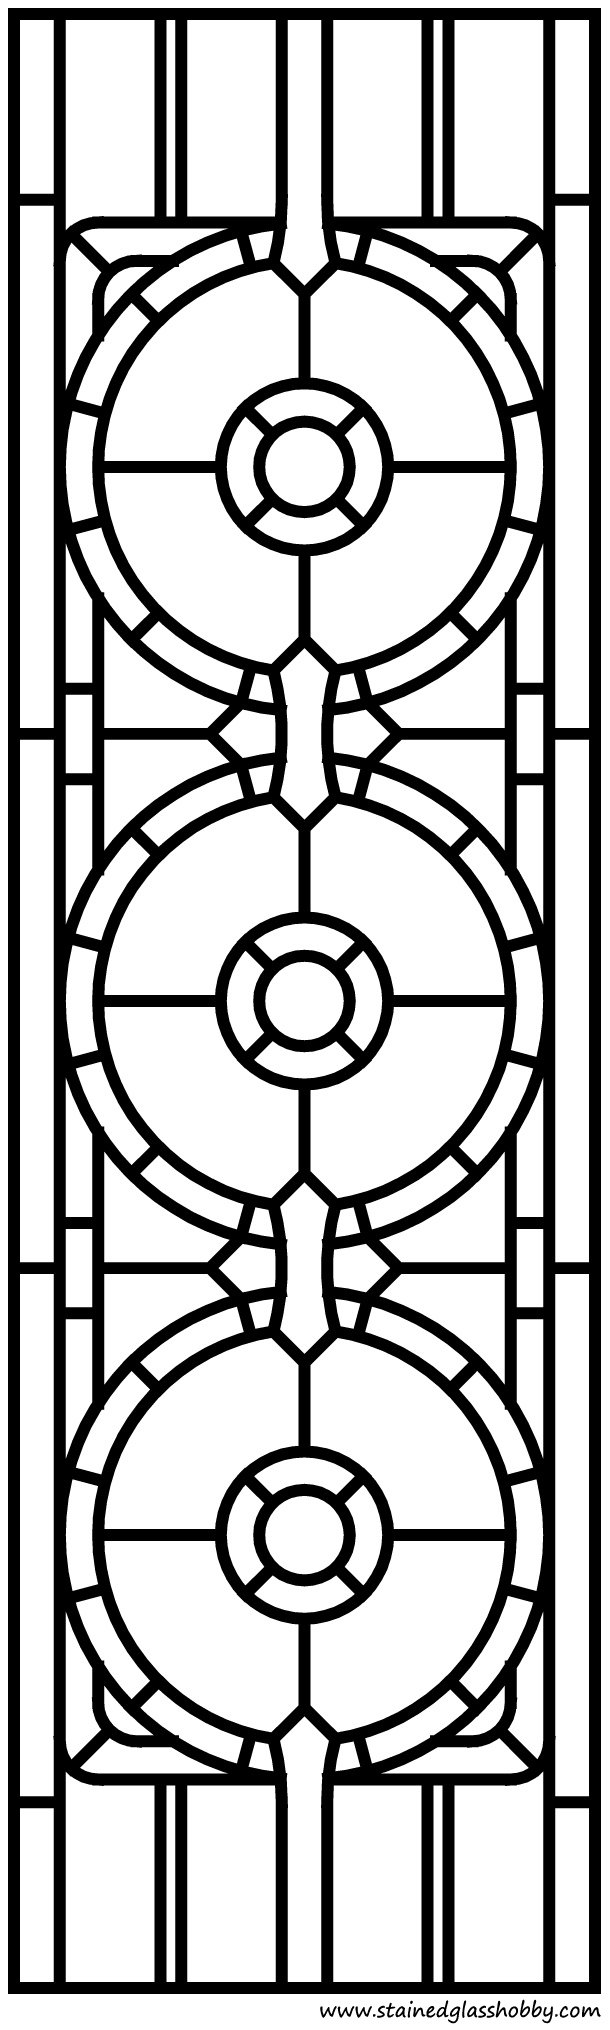 Celtic stained glass door panel free pattern stained glass celtic stained glass door panel free pattern planetlyrics Images